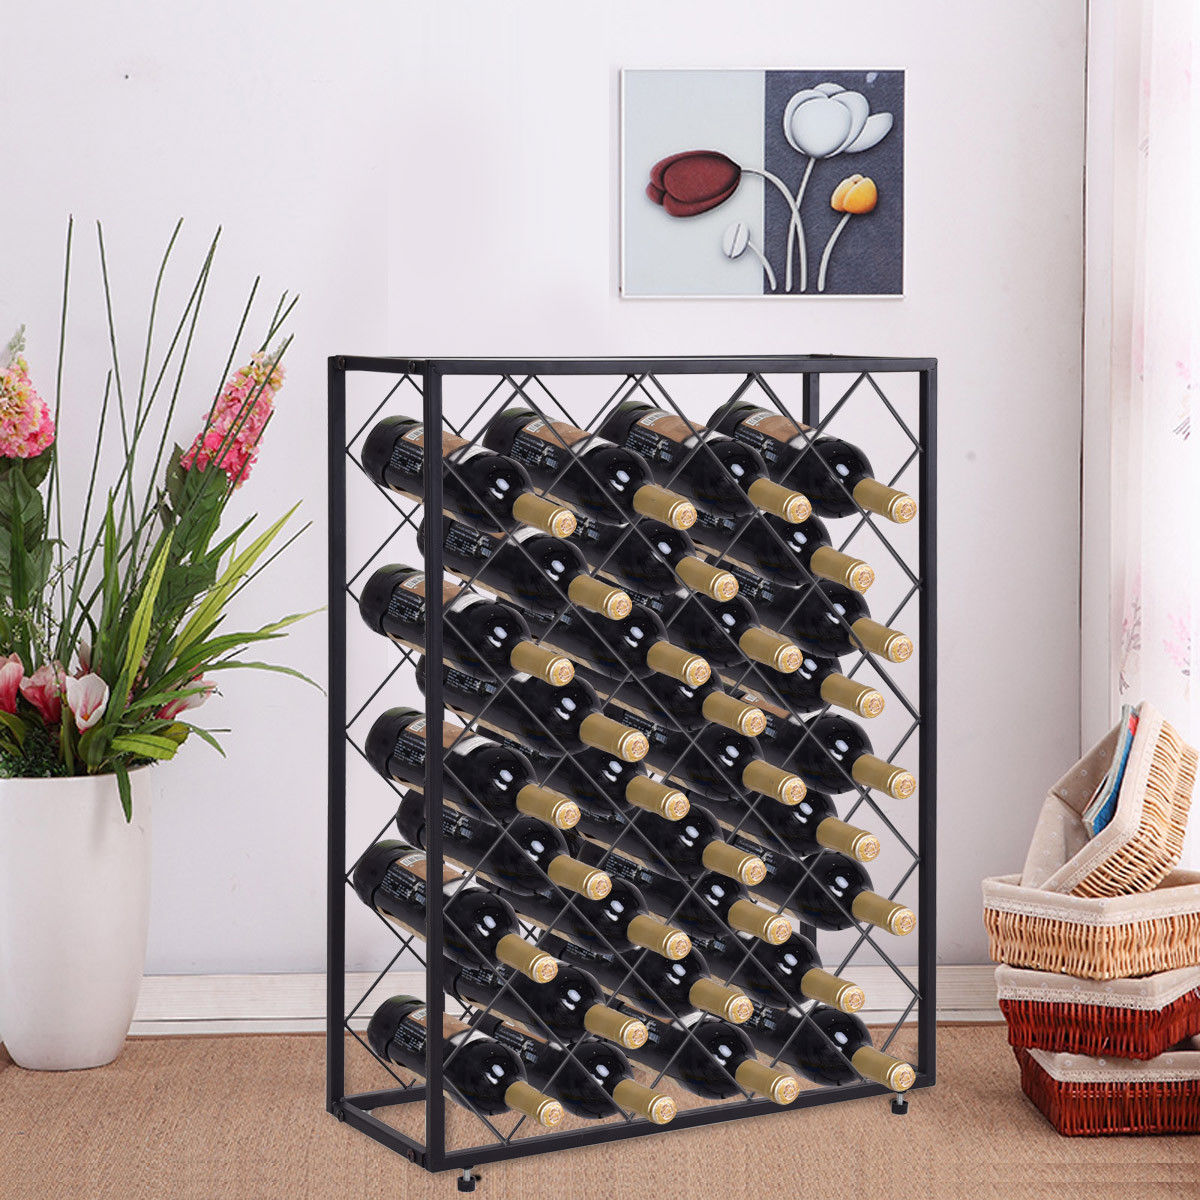 Gymax 32 Bottle Wine Rack Metal Storage Display Liquor Cabinet w/Glass Table Top